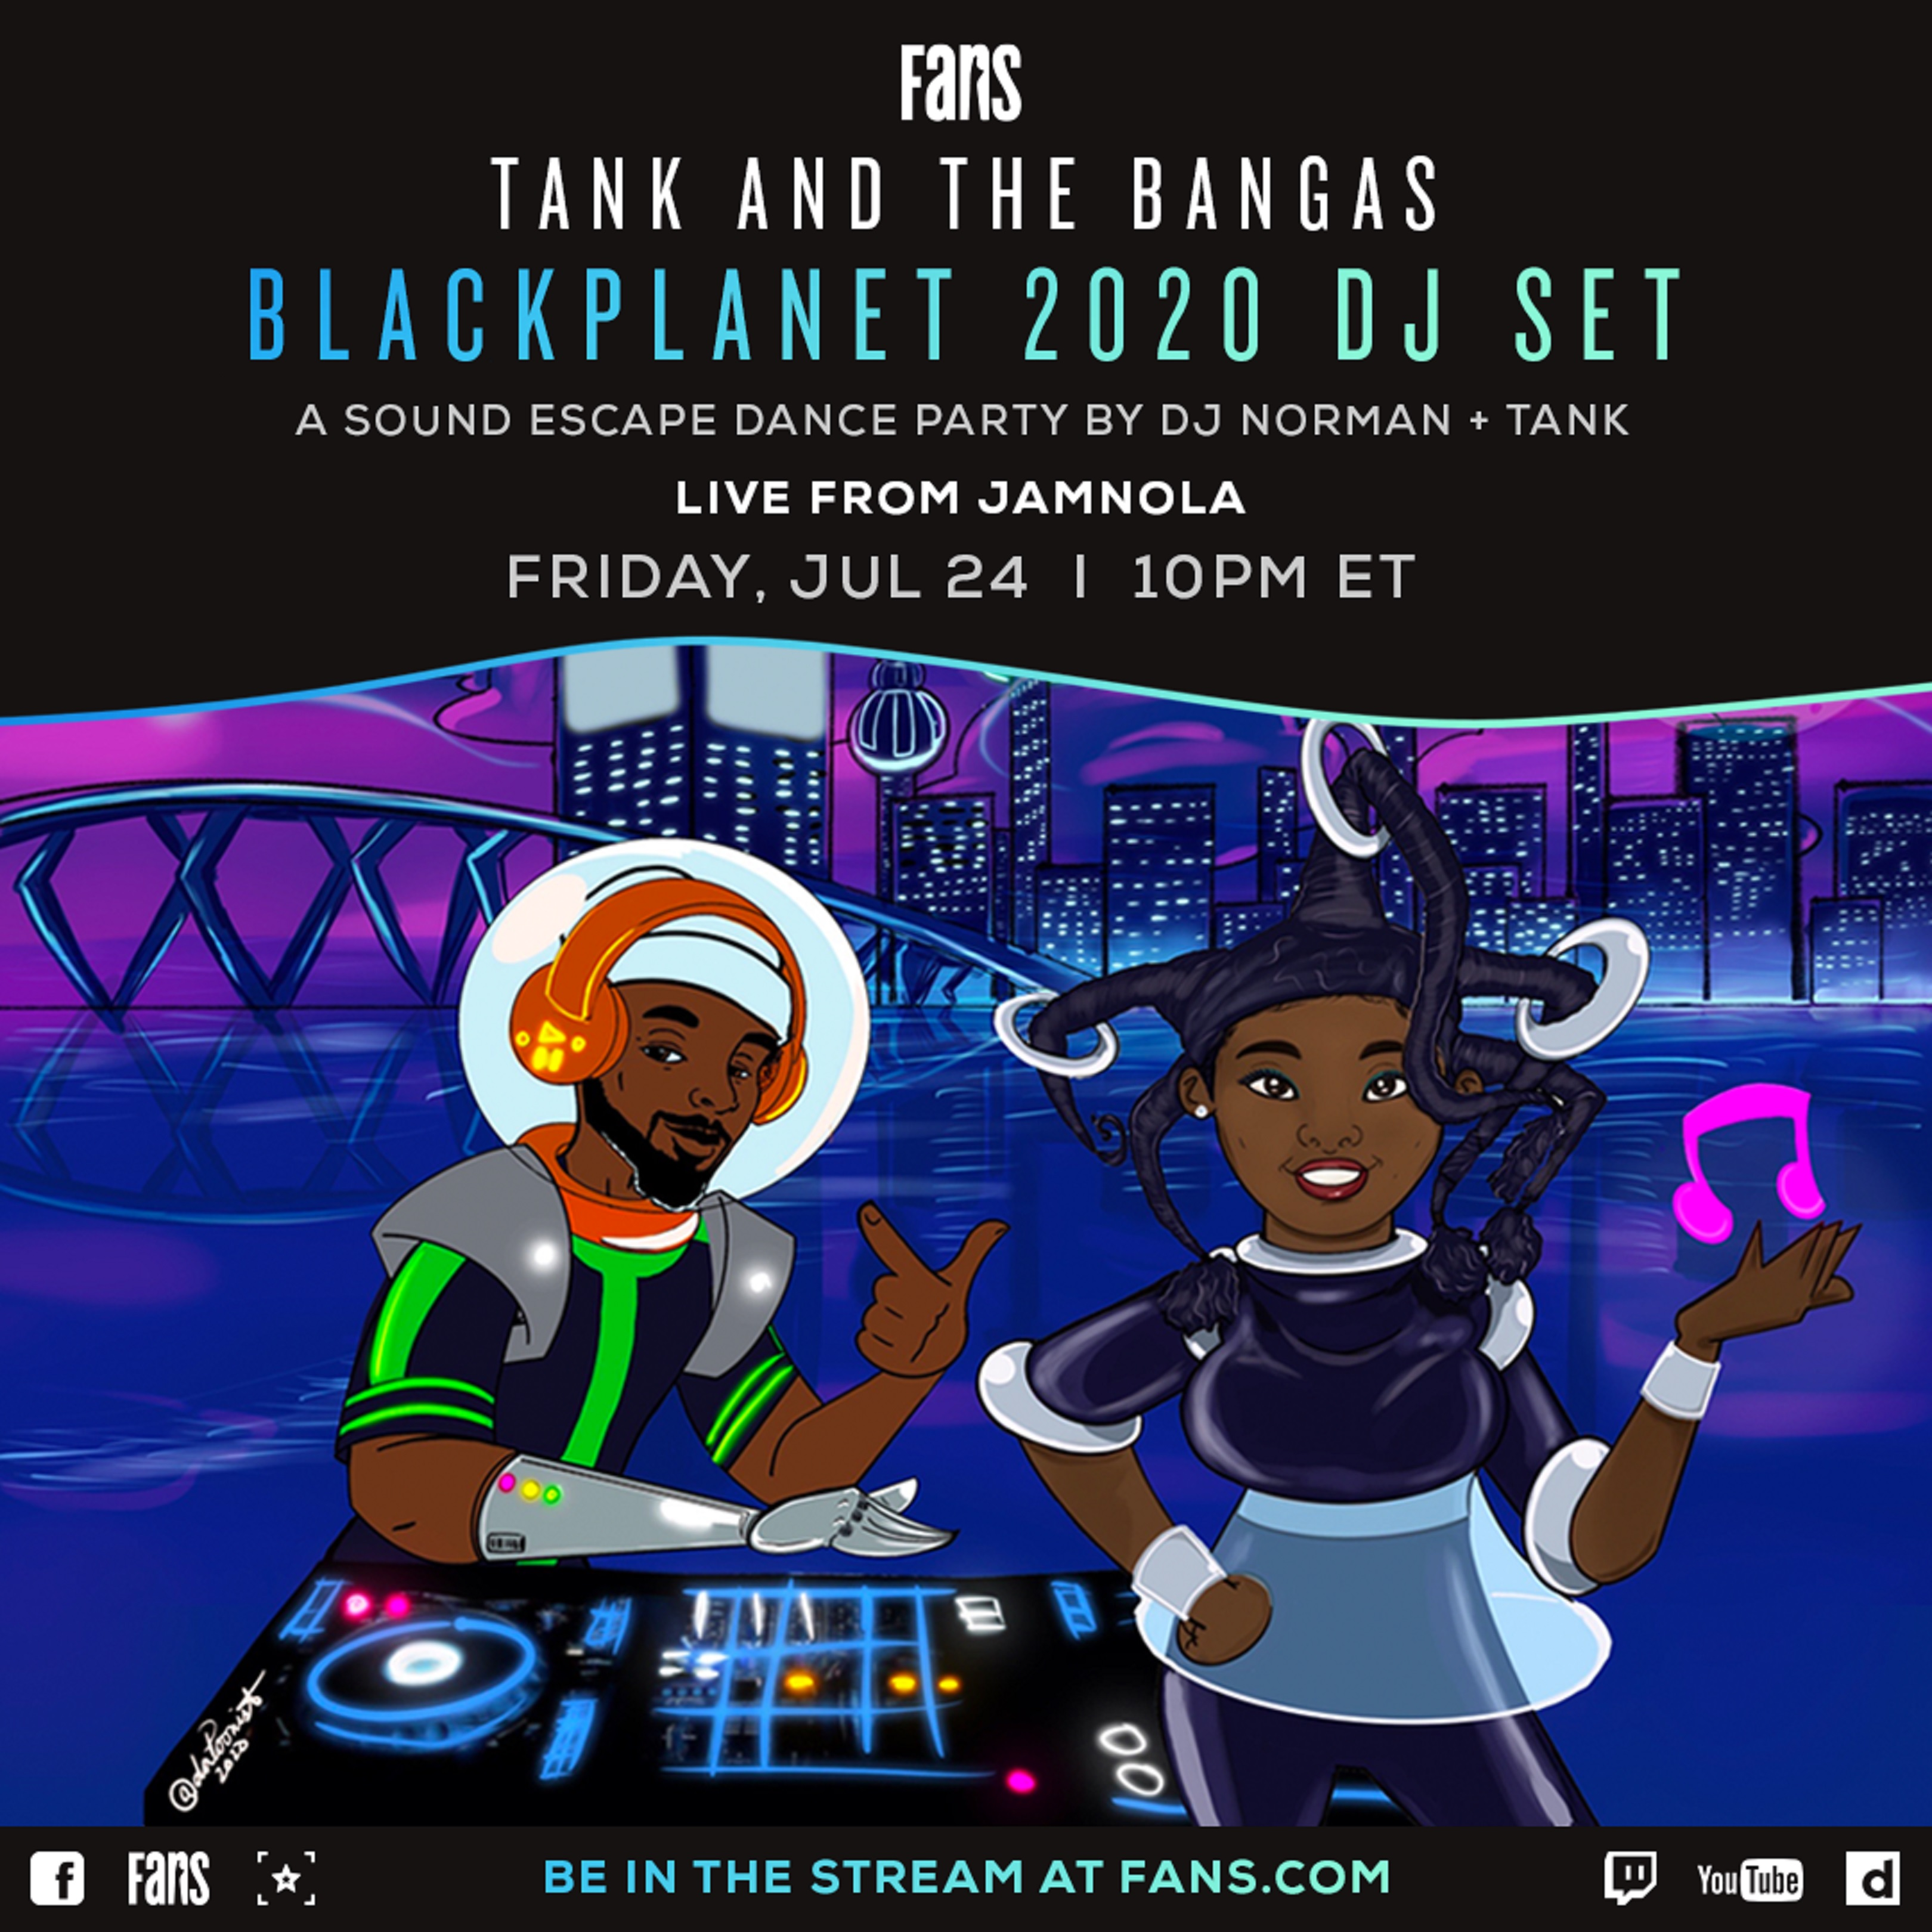 Tank and the Bangas Black Planet 2020 DJ Set